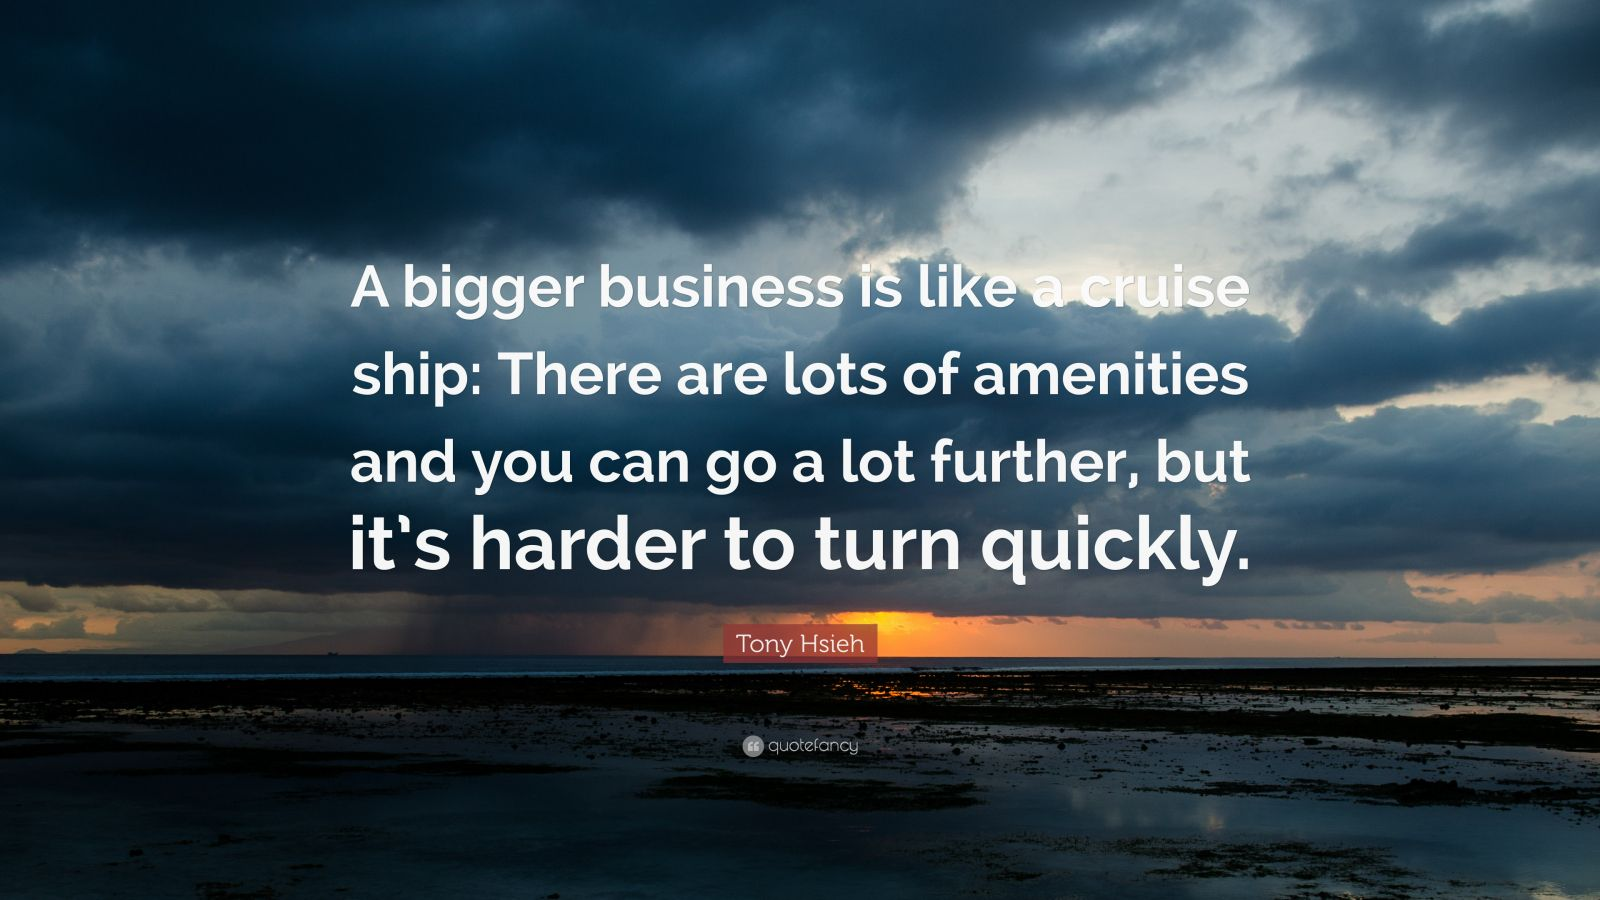 """Tony Hsieh Quote: """"A bigger business is like a cruise ship: There are lots of amenities and you can go a lot further, but it's harder to turn quickly."""""""